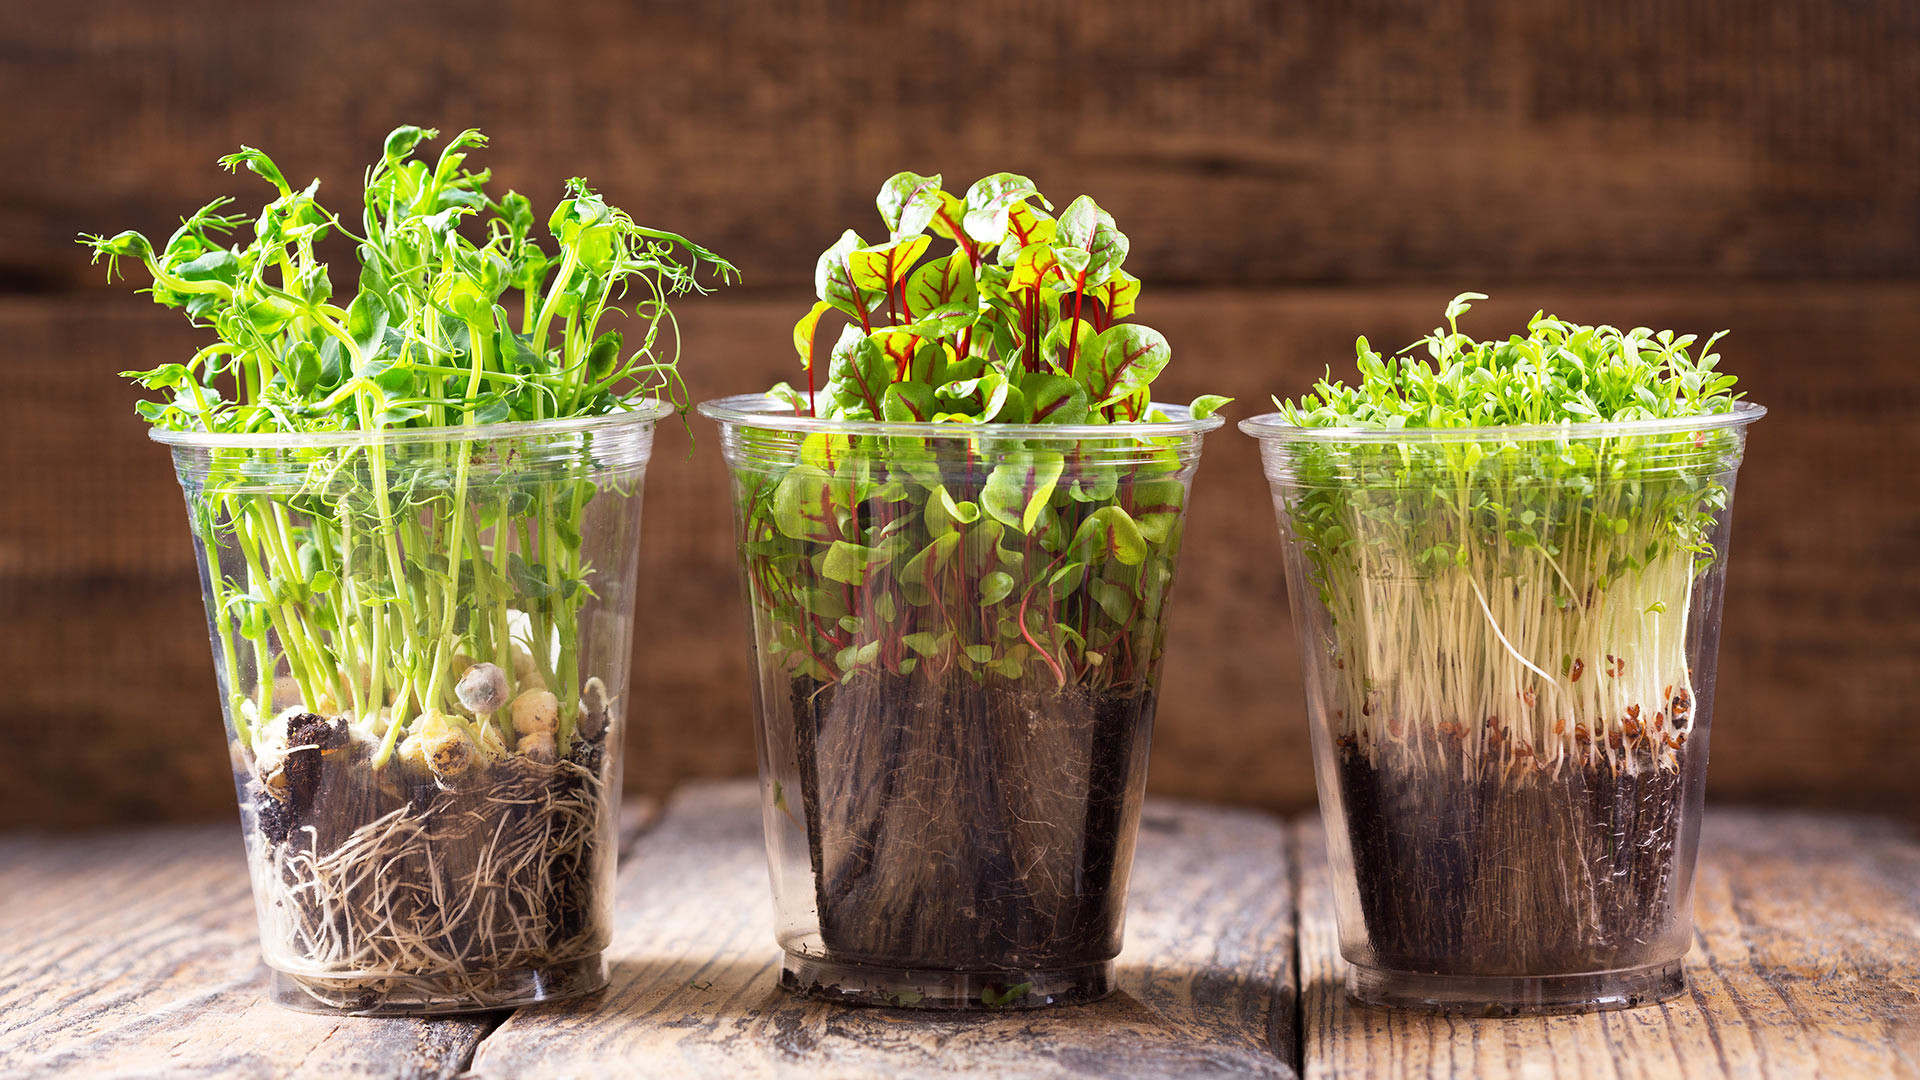 Cress growing in pots